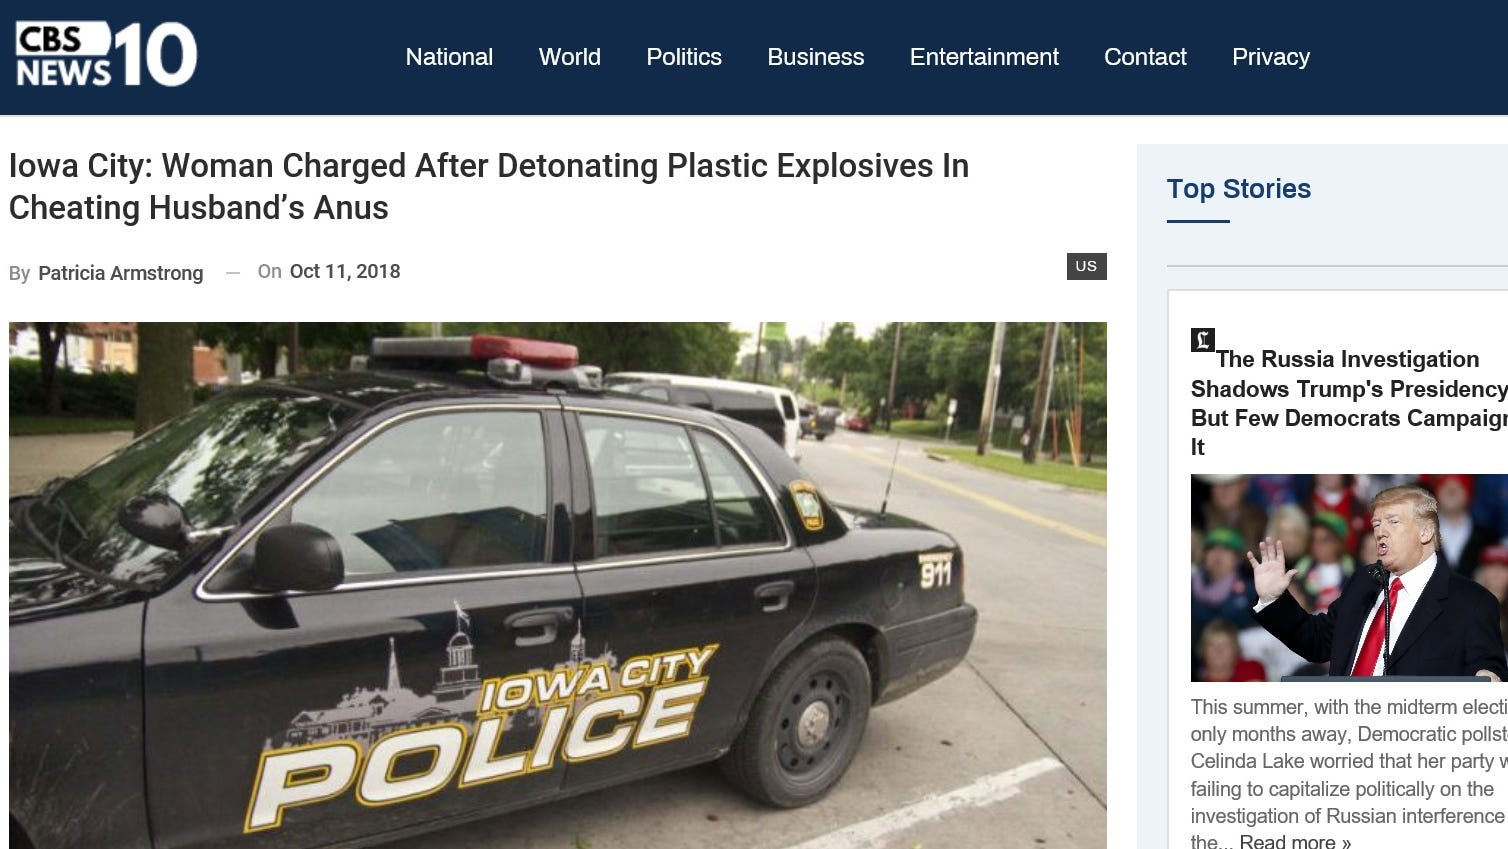 Story debunked on Iowa City wife killing cheating husband with explosives